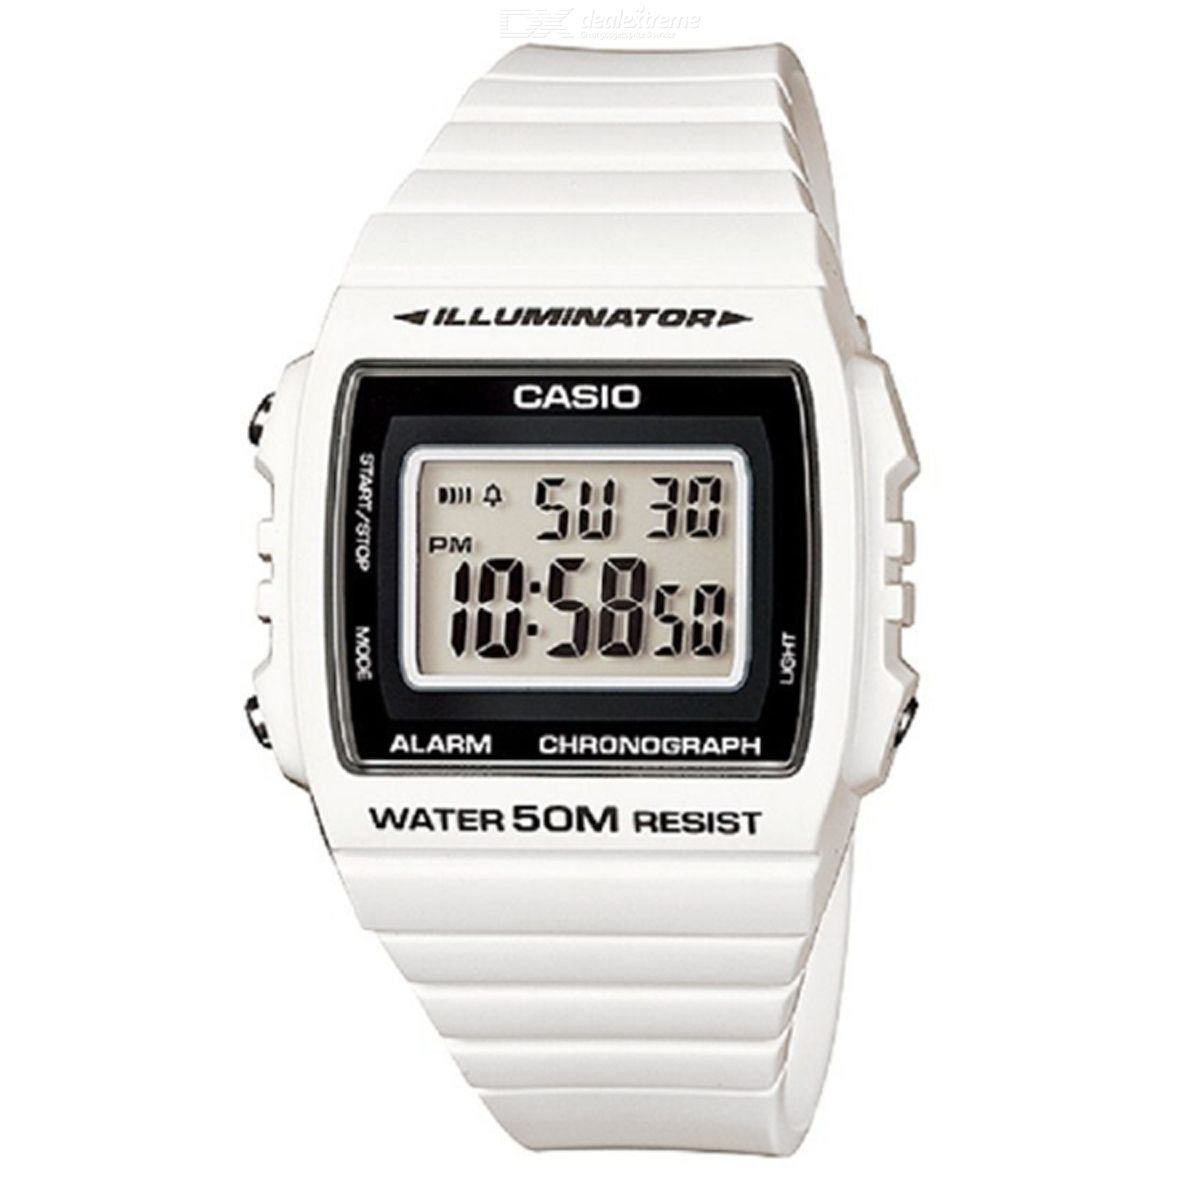 CASIO W-215H-7AVDF Men's Wristwatch - White + Black (Without Box)